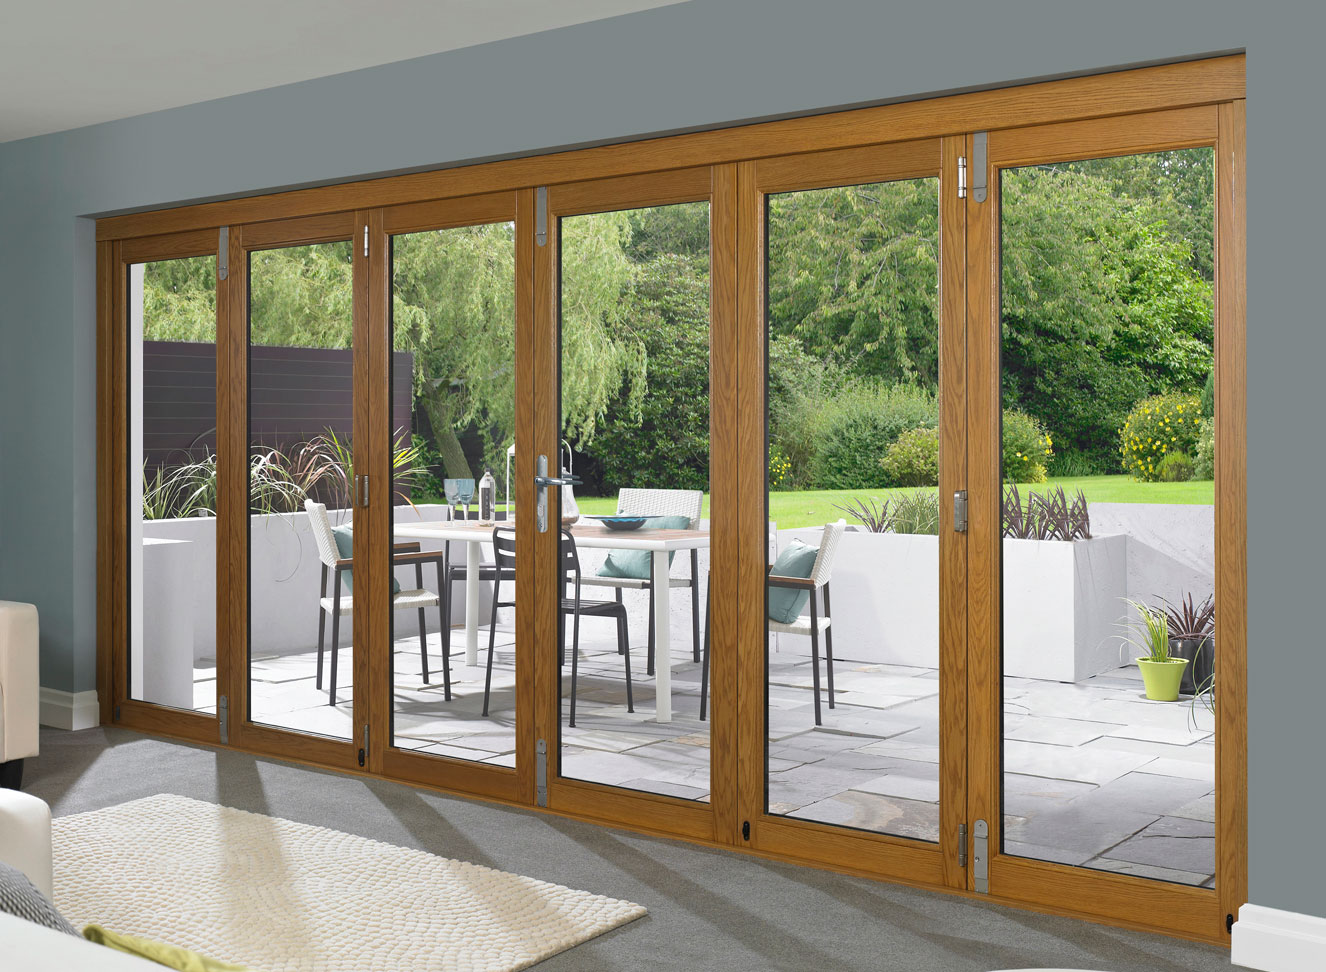 Schiebe Falttüren Aussen Folding French Doors Exterior The Door That Brings The